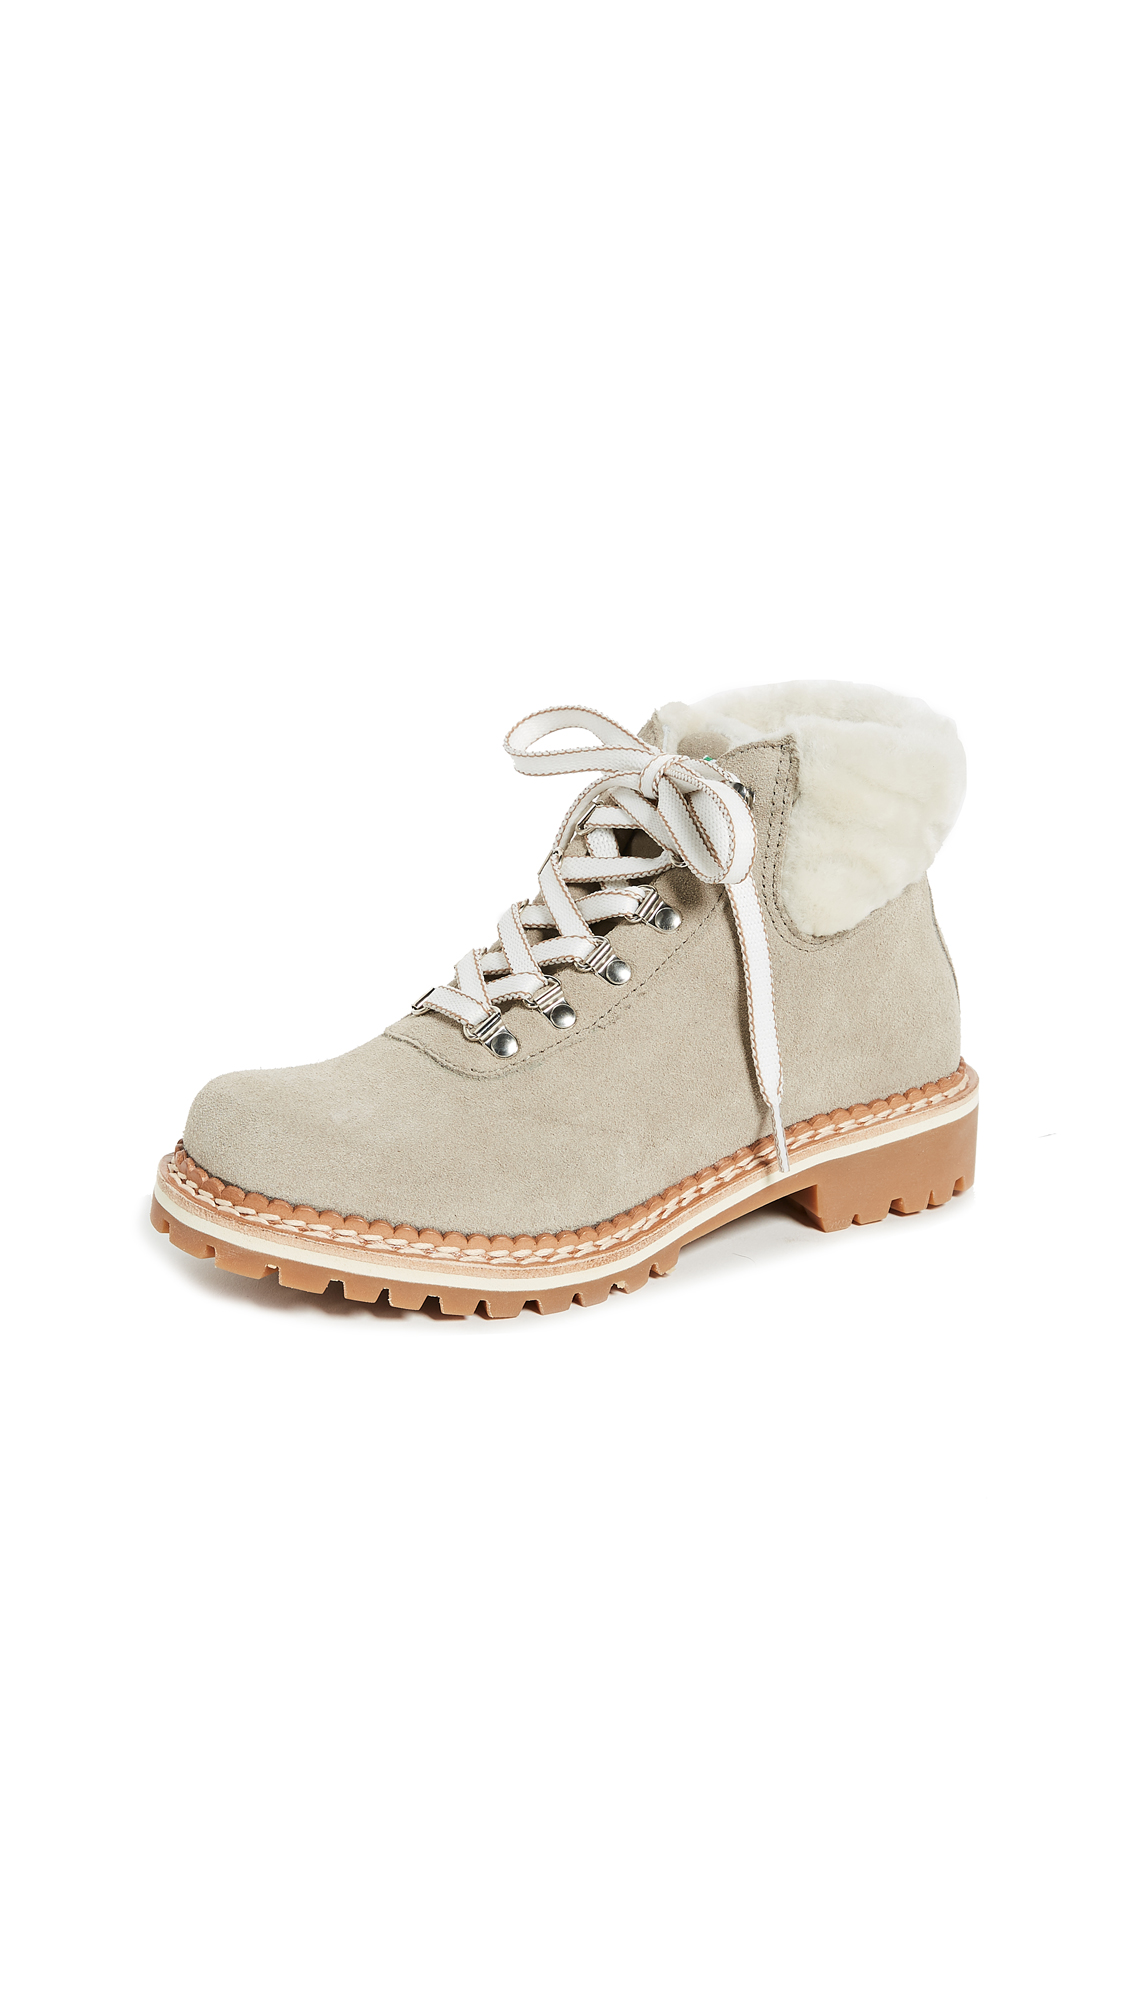 Montelliana Sequoia Hiker Boots - Beige/White